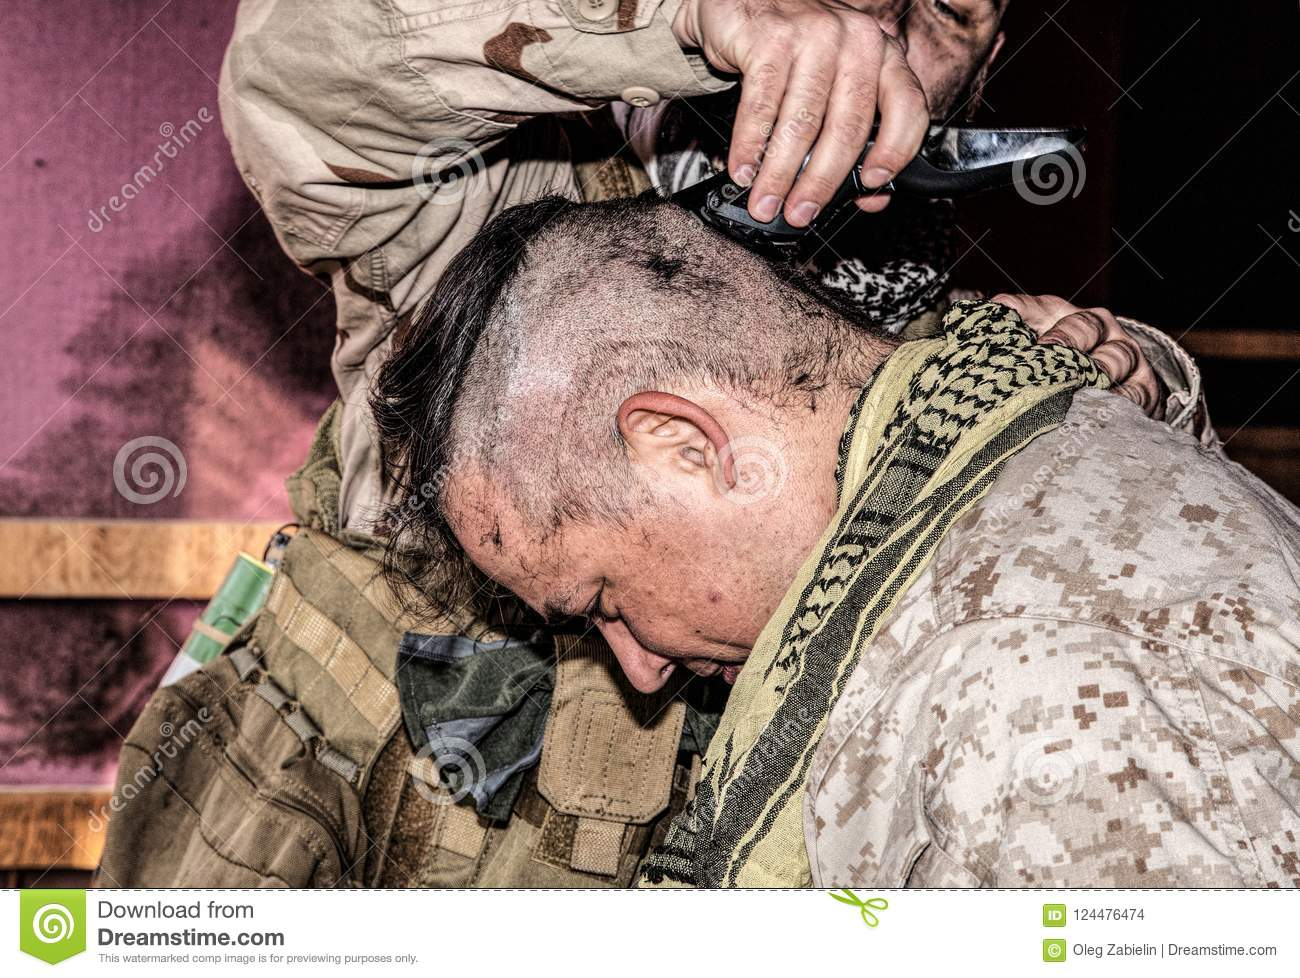 Soldier cuts comrades hair with trimmer or clipper